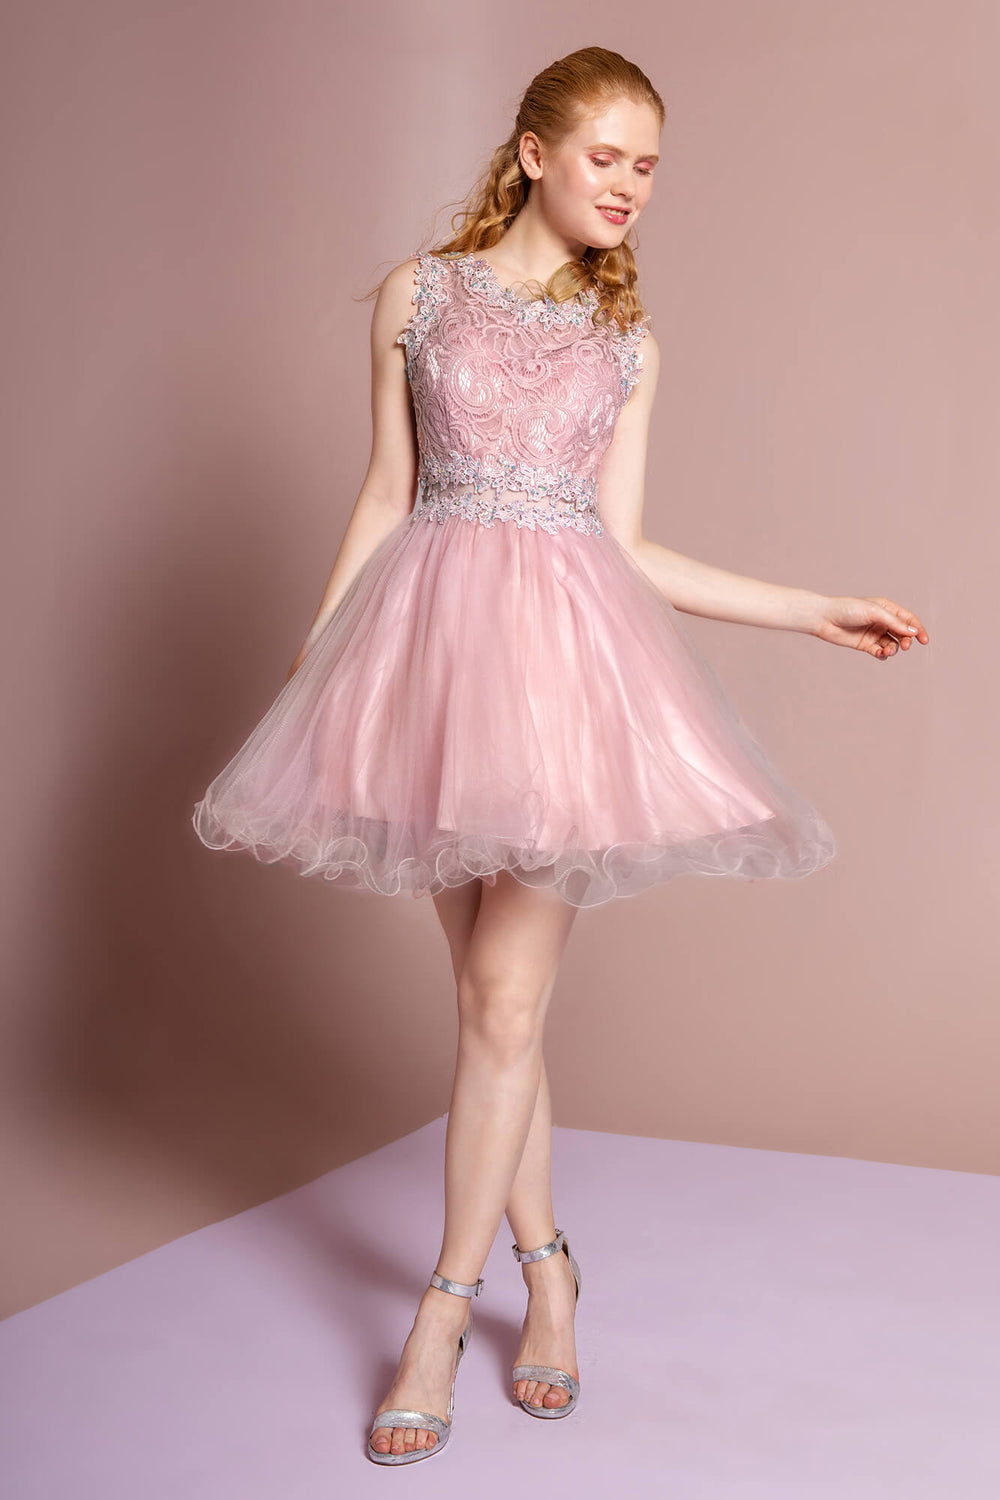 Sleeveless Prom Short Dress Homecoming - The Dress Outlet Mauve Pink